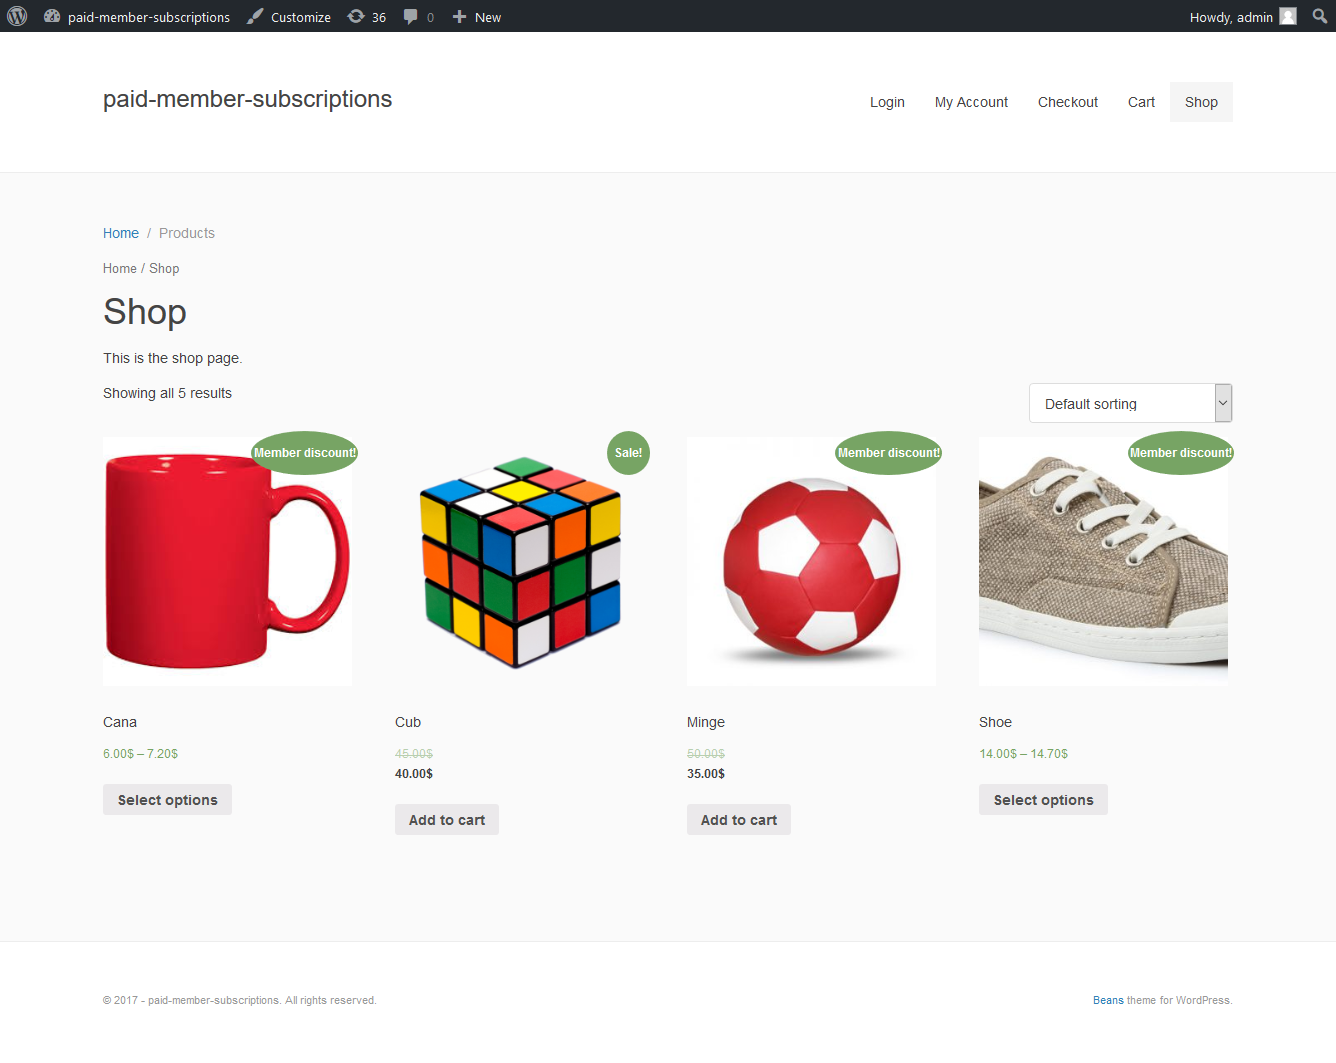 Display of member discounted products in the front-end